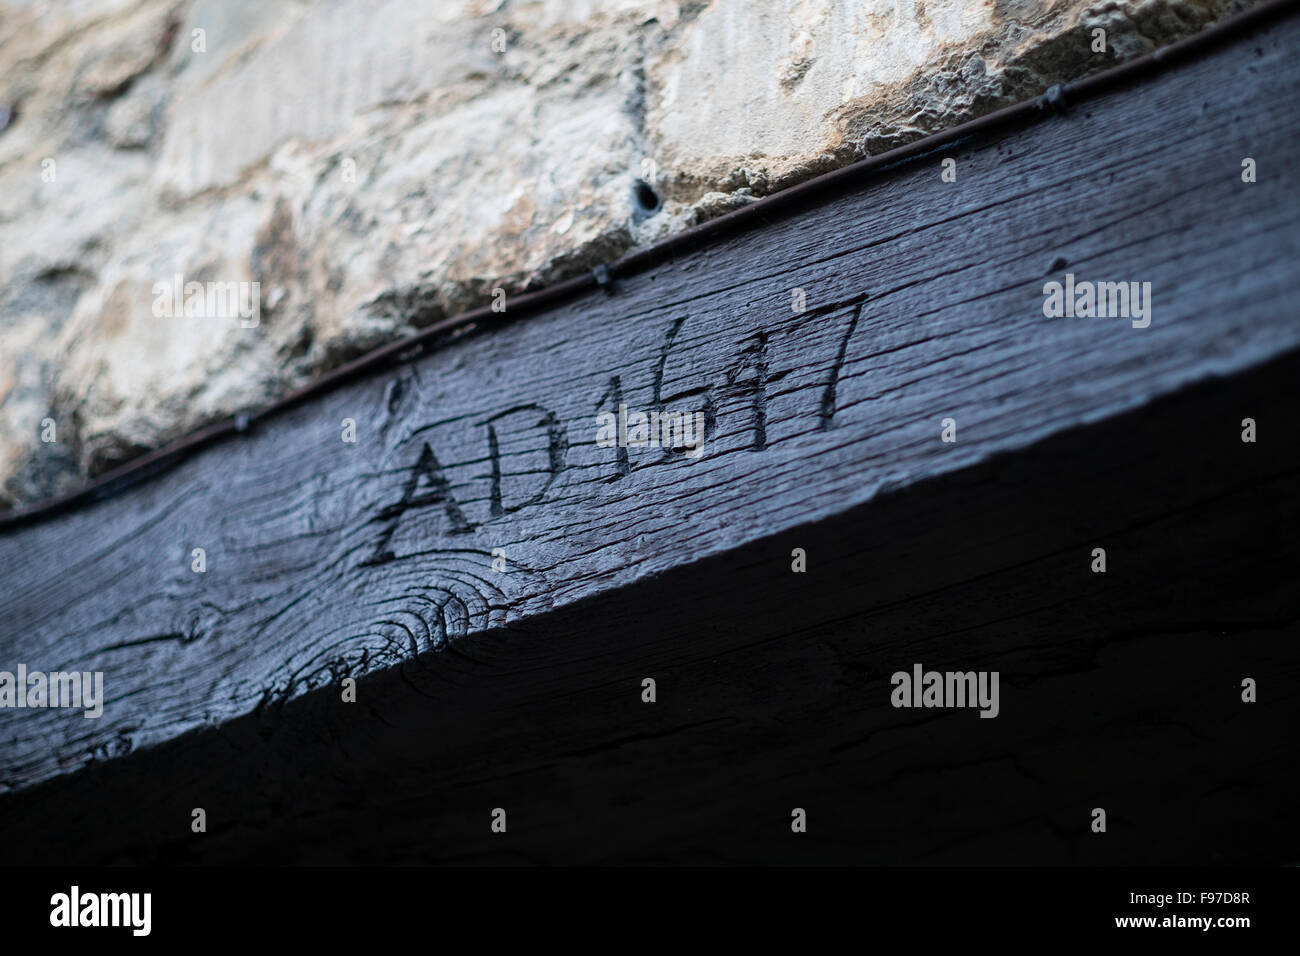 The date year AD 1647 carved into a door frame of an old historical  building in Cirencester, Gloucestershire, England, - Stock Image